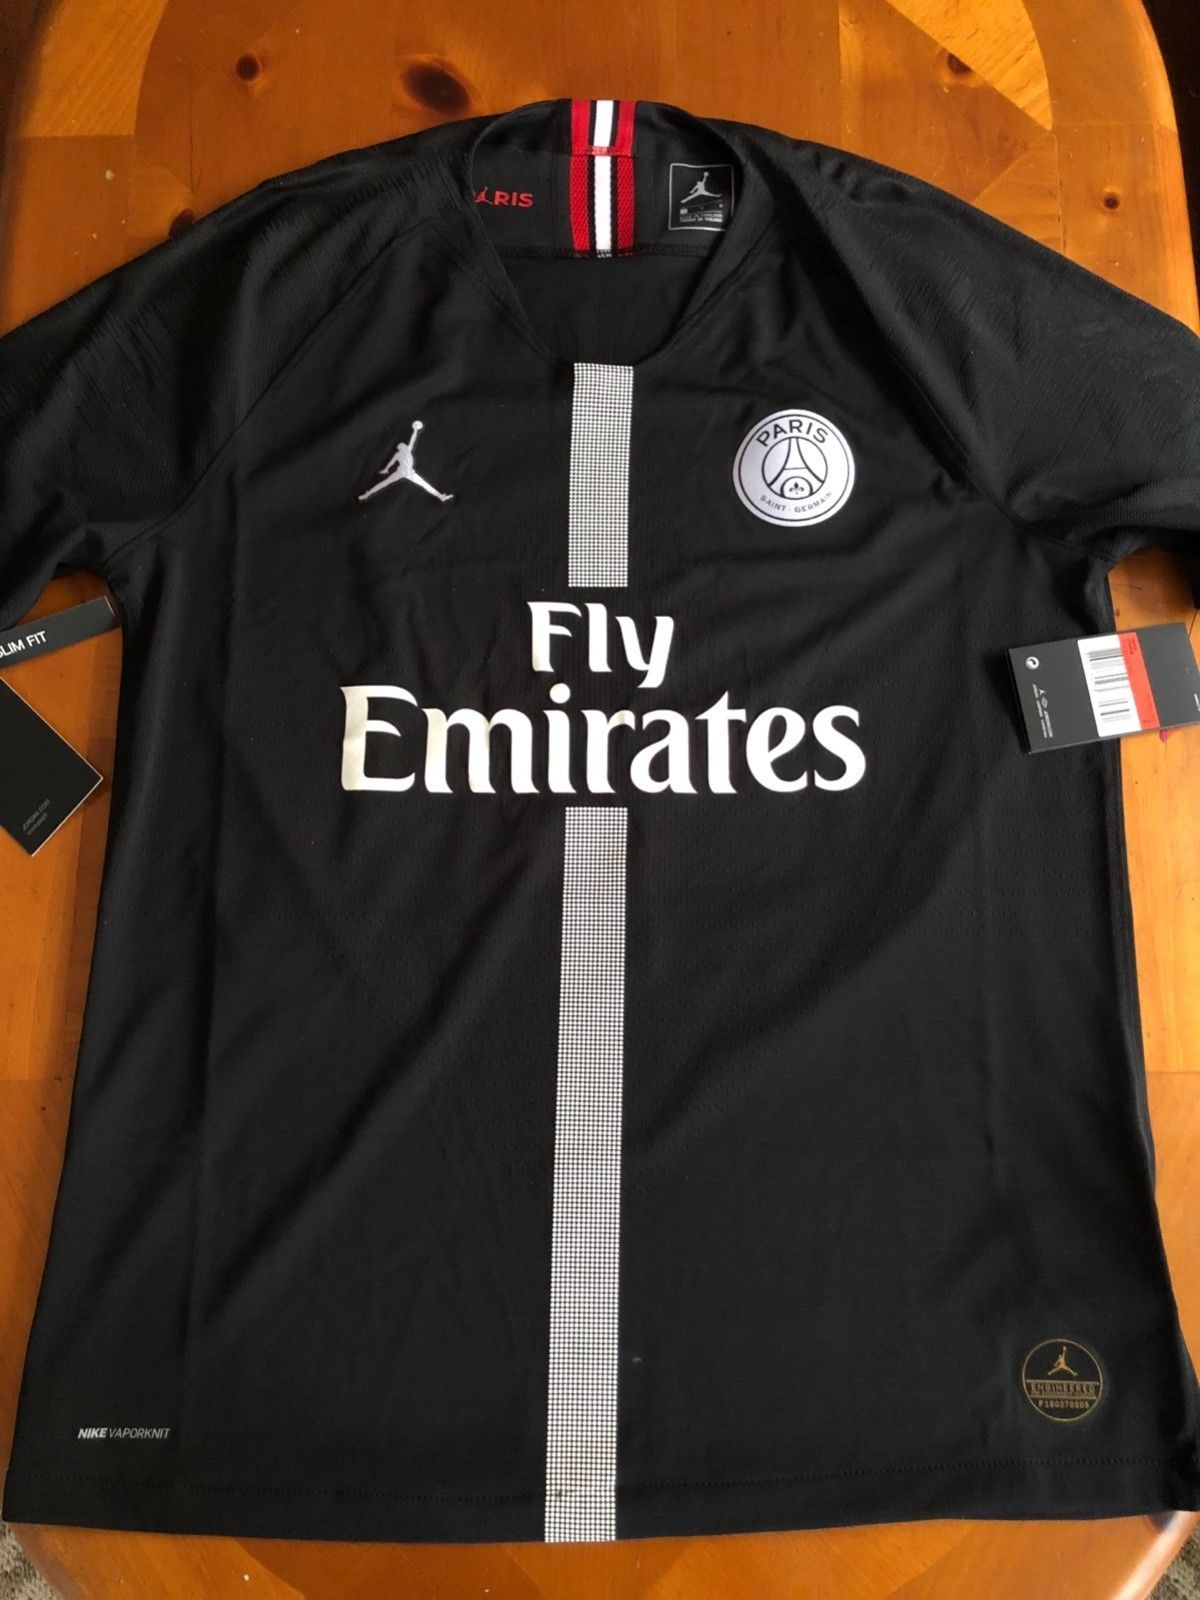 PSG Jordan Nike Vaporknit Vapor Match Authentic Champions League ... 127b2589946